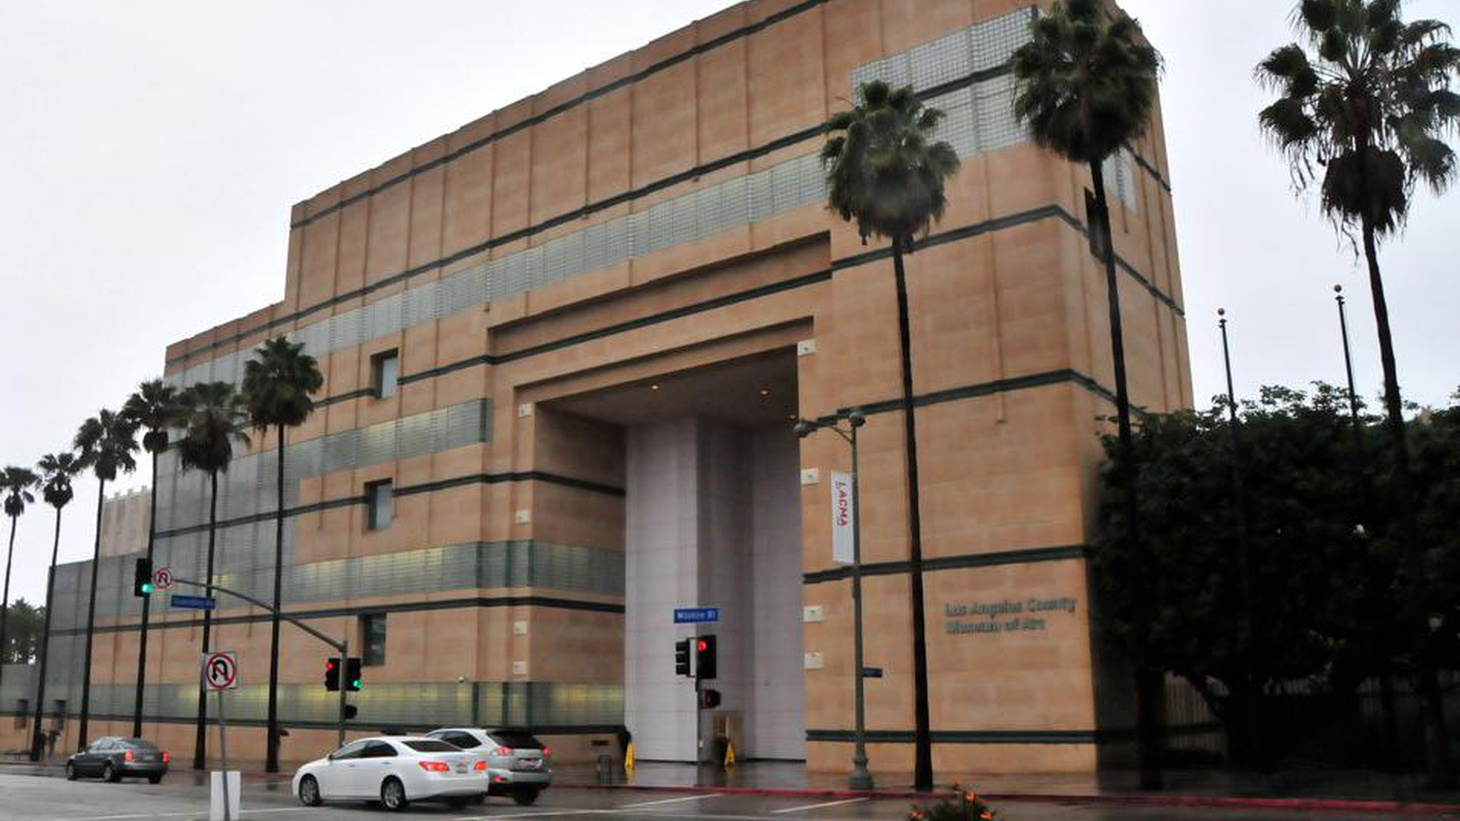 If Director Michael Govan has his way, half of LACMA will be replaced by a single structure, to make LA an art center equal to Athens, Paris, Rome or New York.